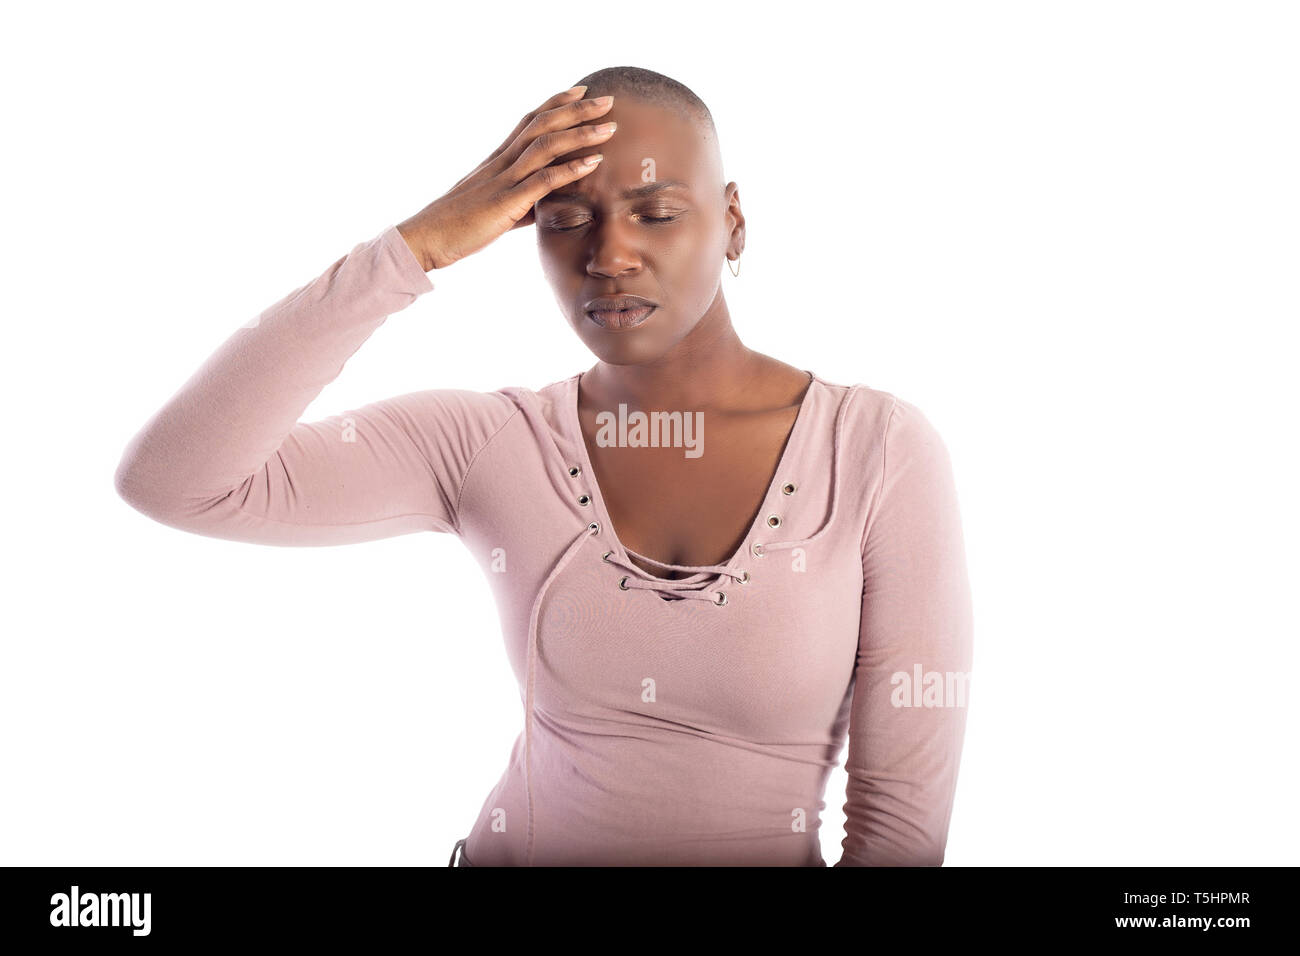 Black african american female model with bald hairstyle wearing a pink shirt on a white background looking sick with headache or migraine - Stock Image